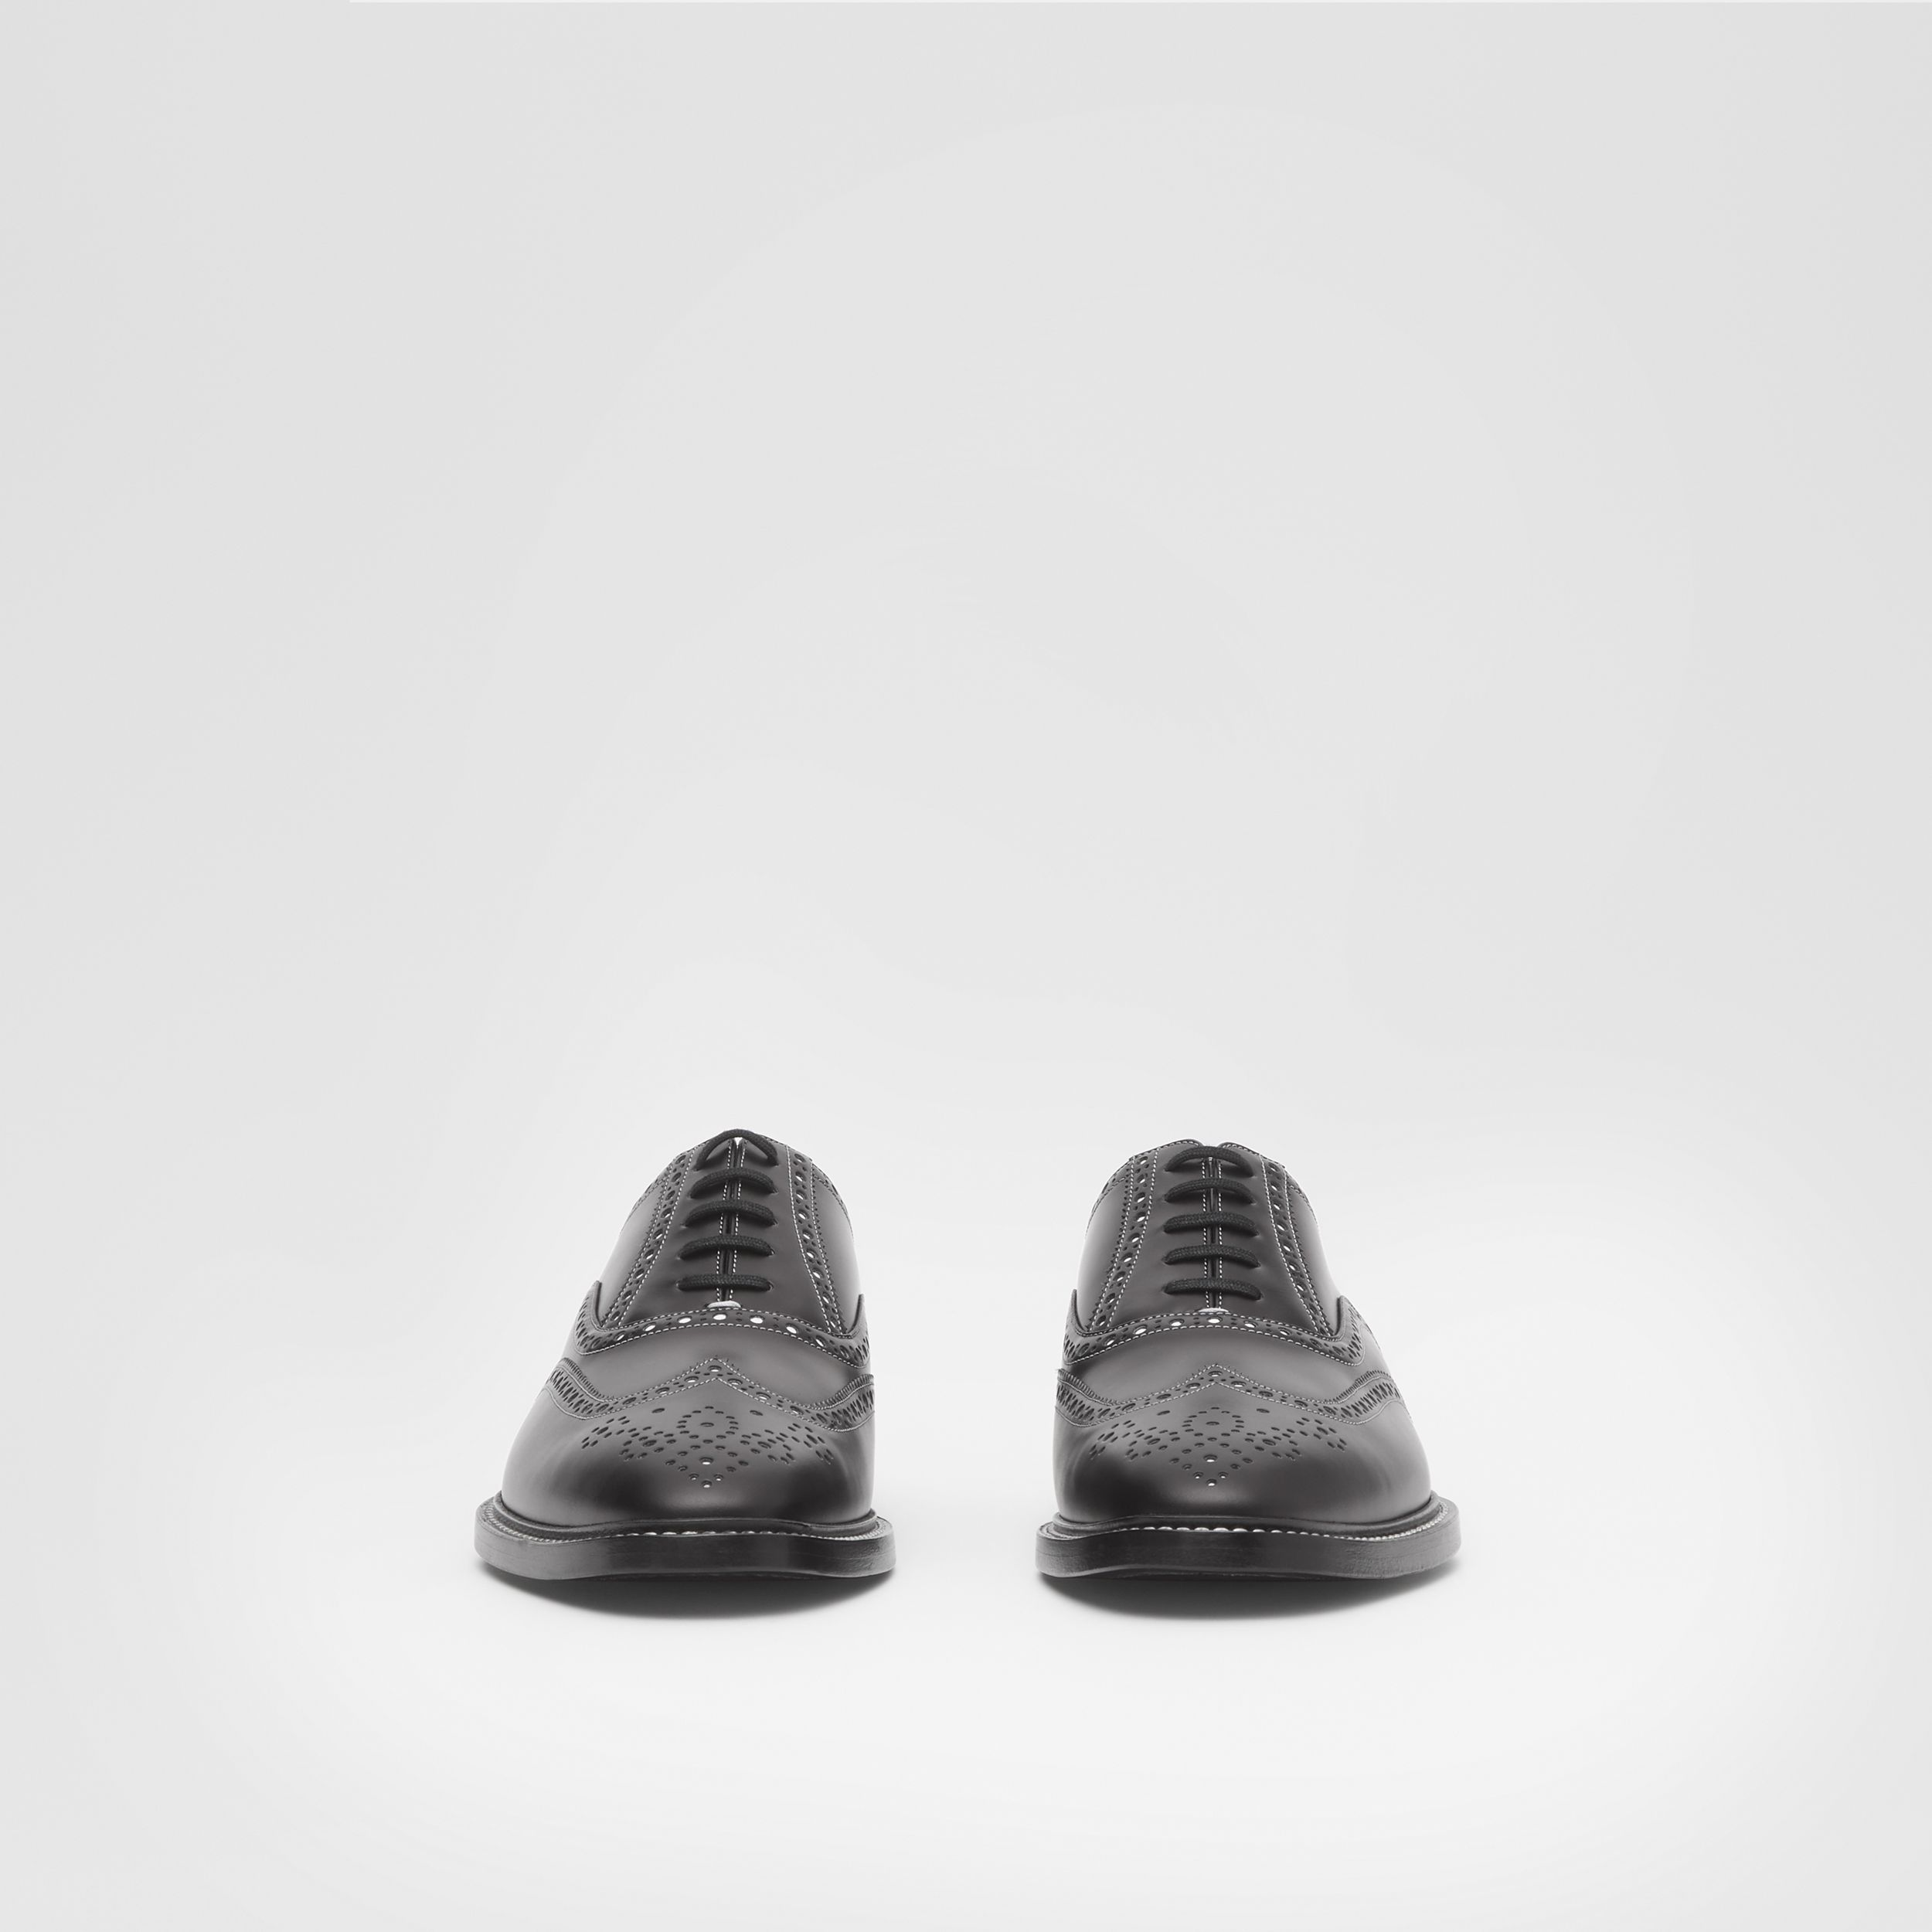 D-ring Detail Two-tone Leather Oxford Brogues in Black/white - Men | Burberry - 3